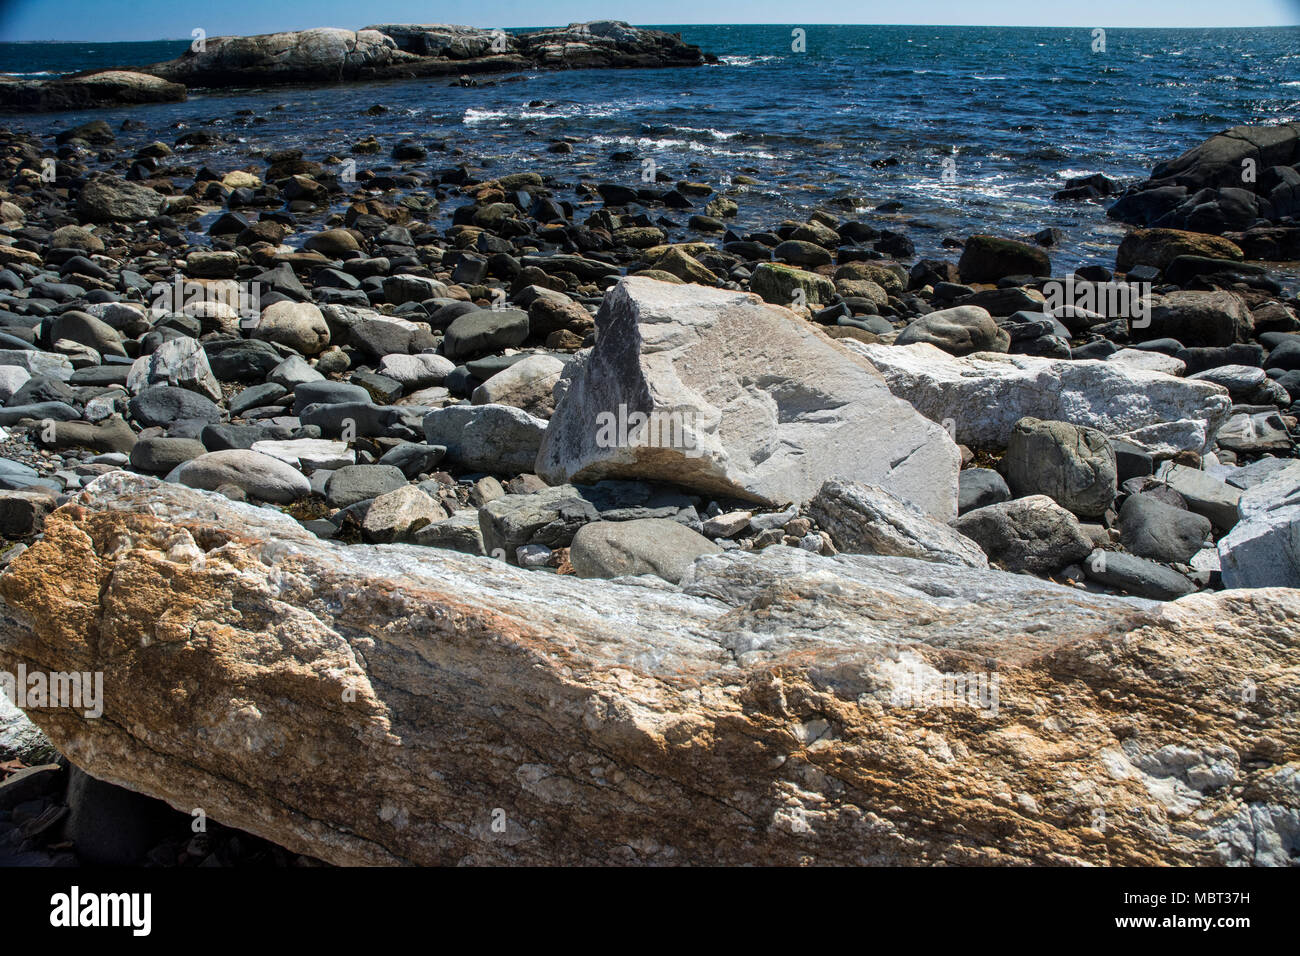 Rocky coastline is a signature of New England, USA. - Stock Image